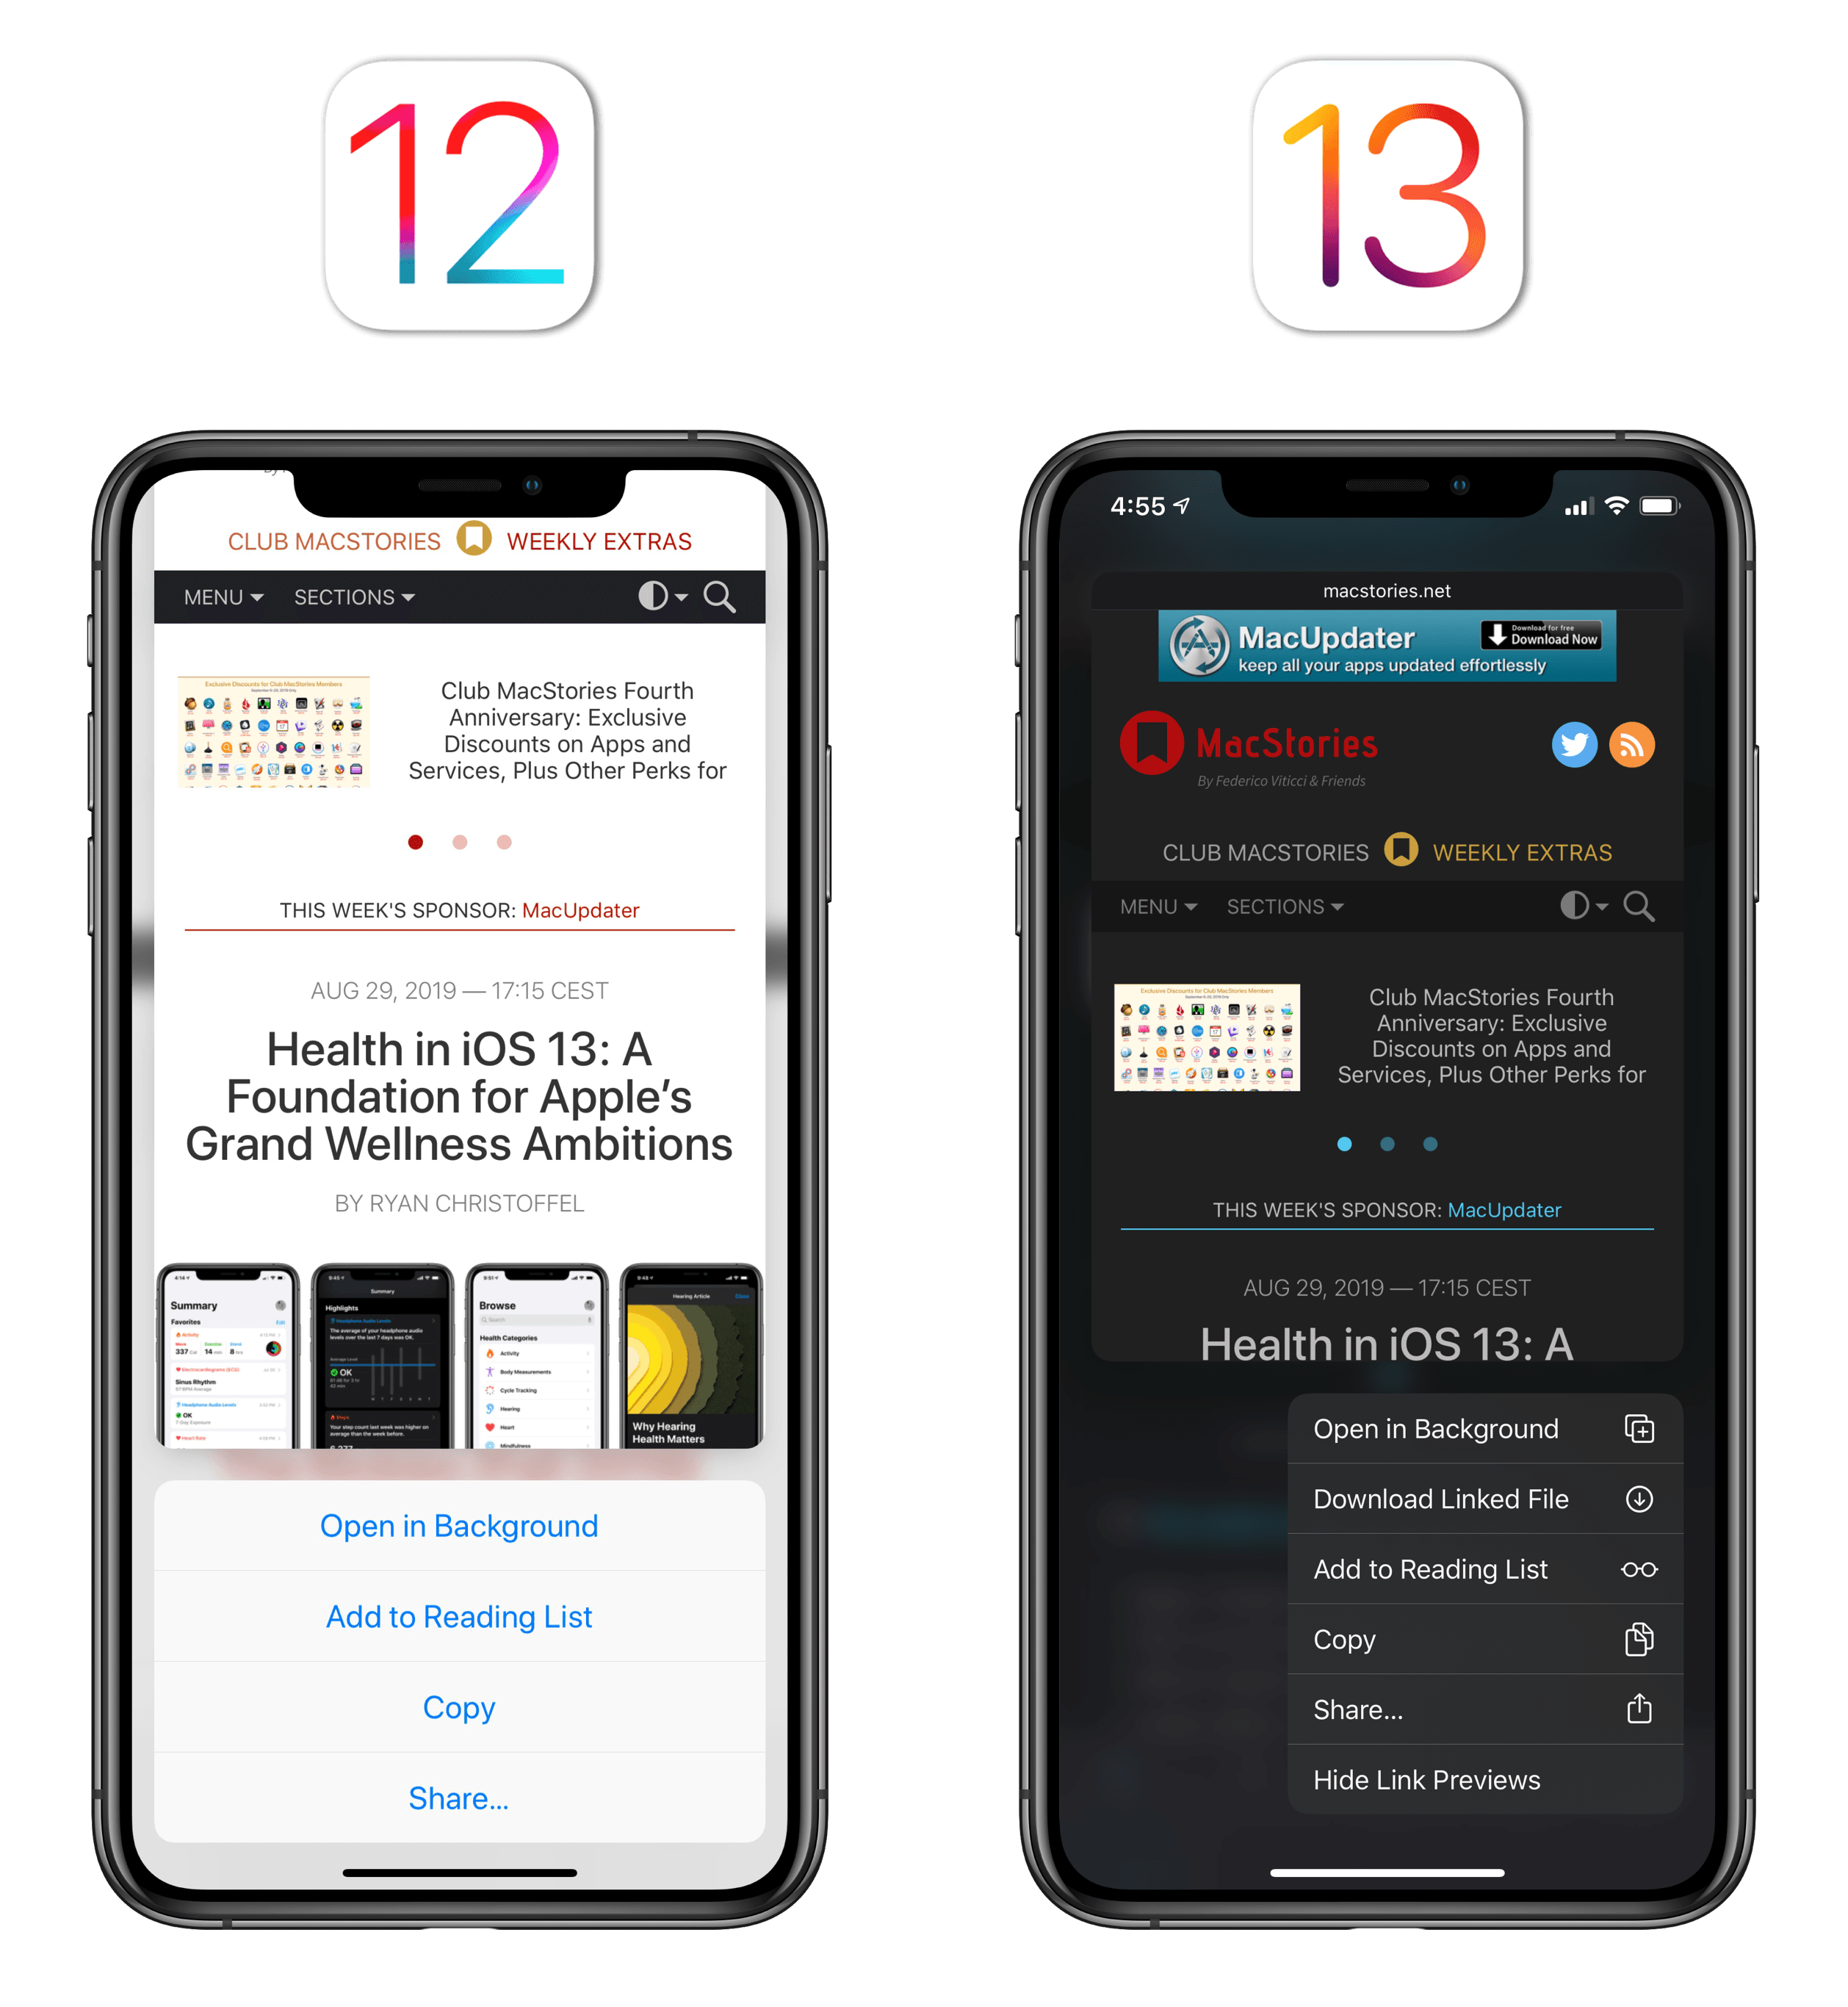 You needed to swipe up to see actions available for peek and pop in iOS 12.